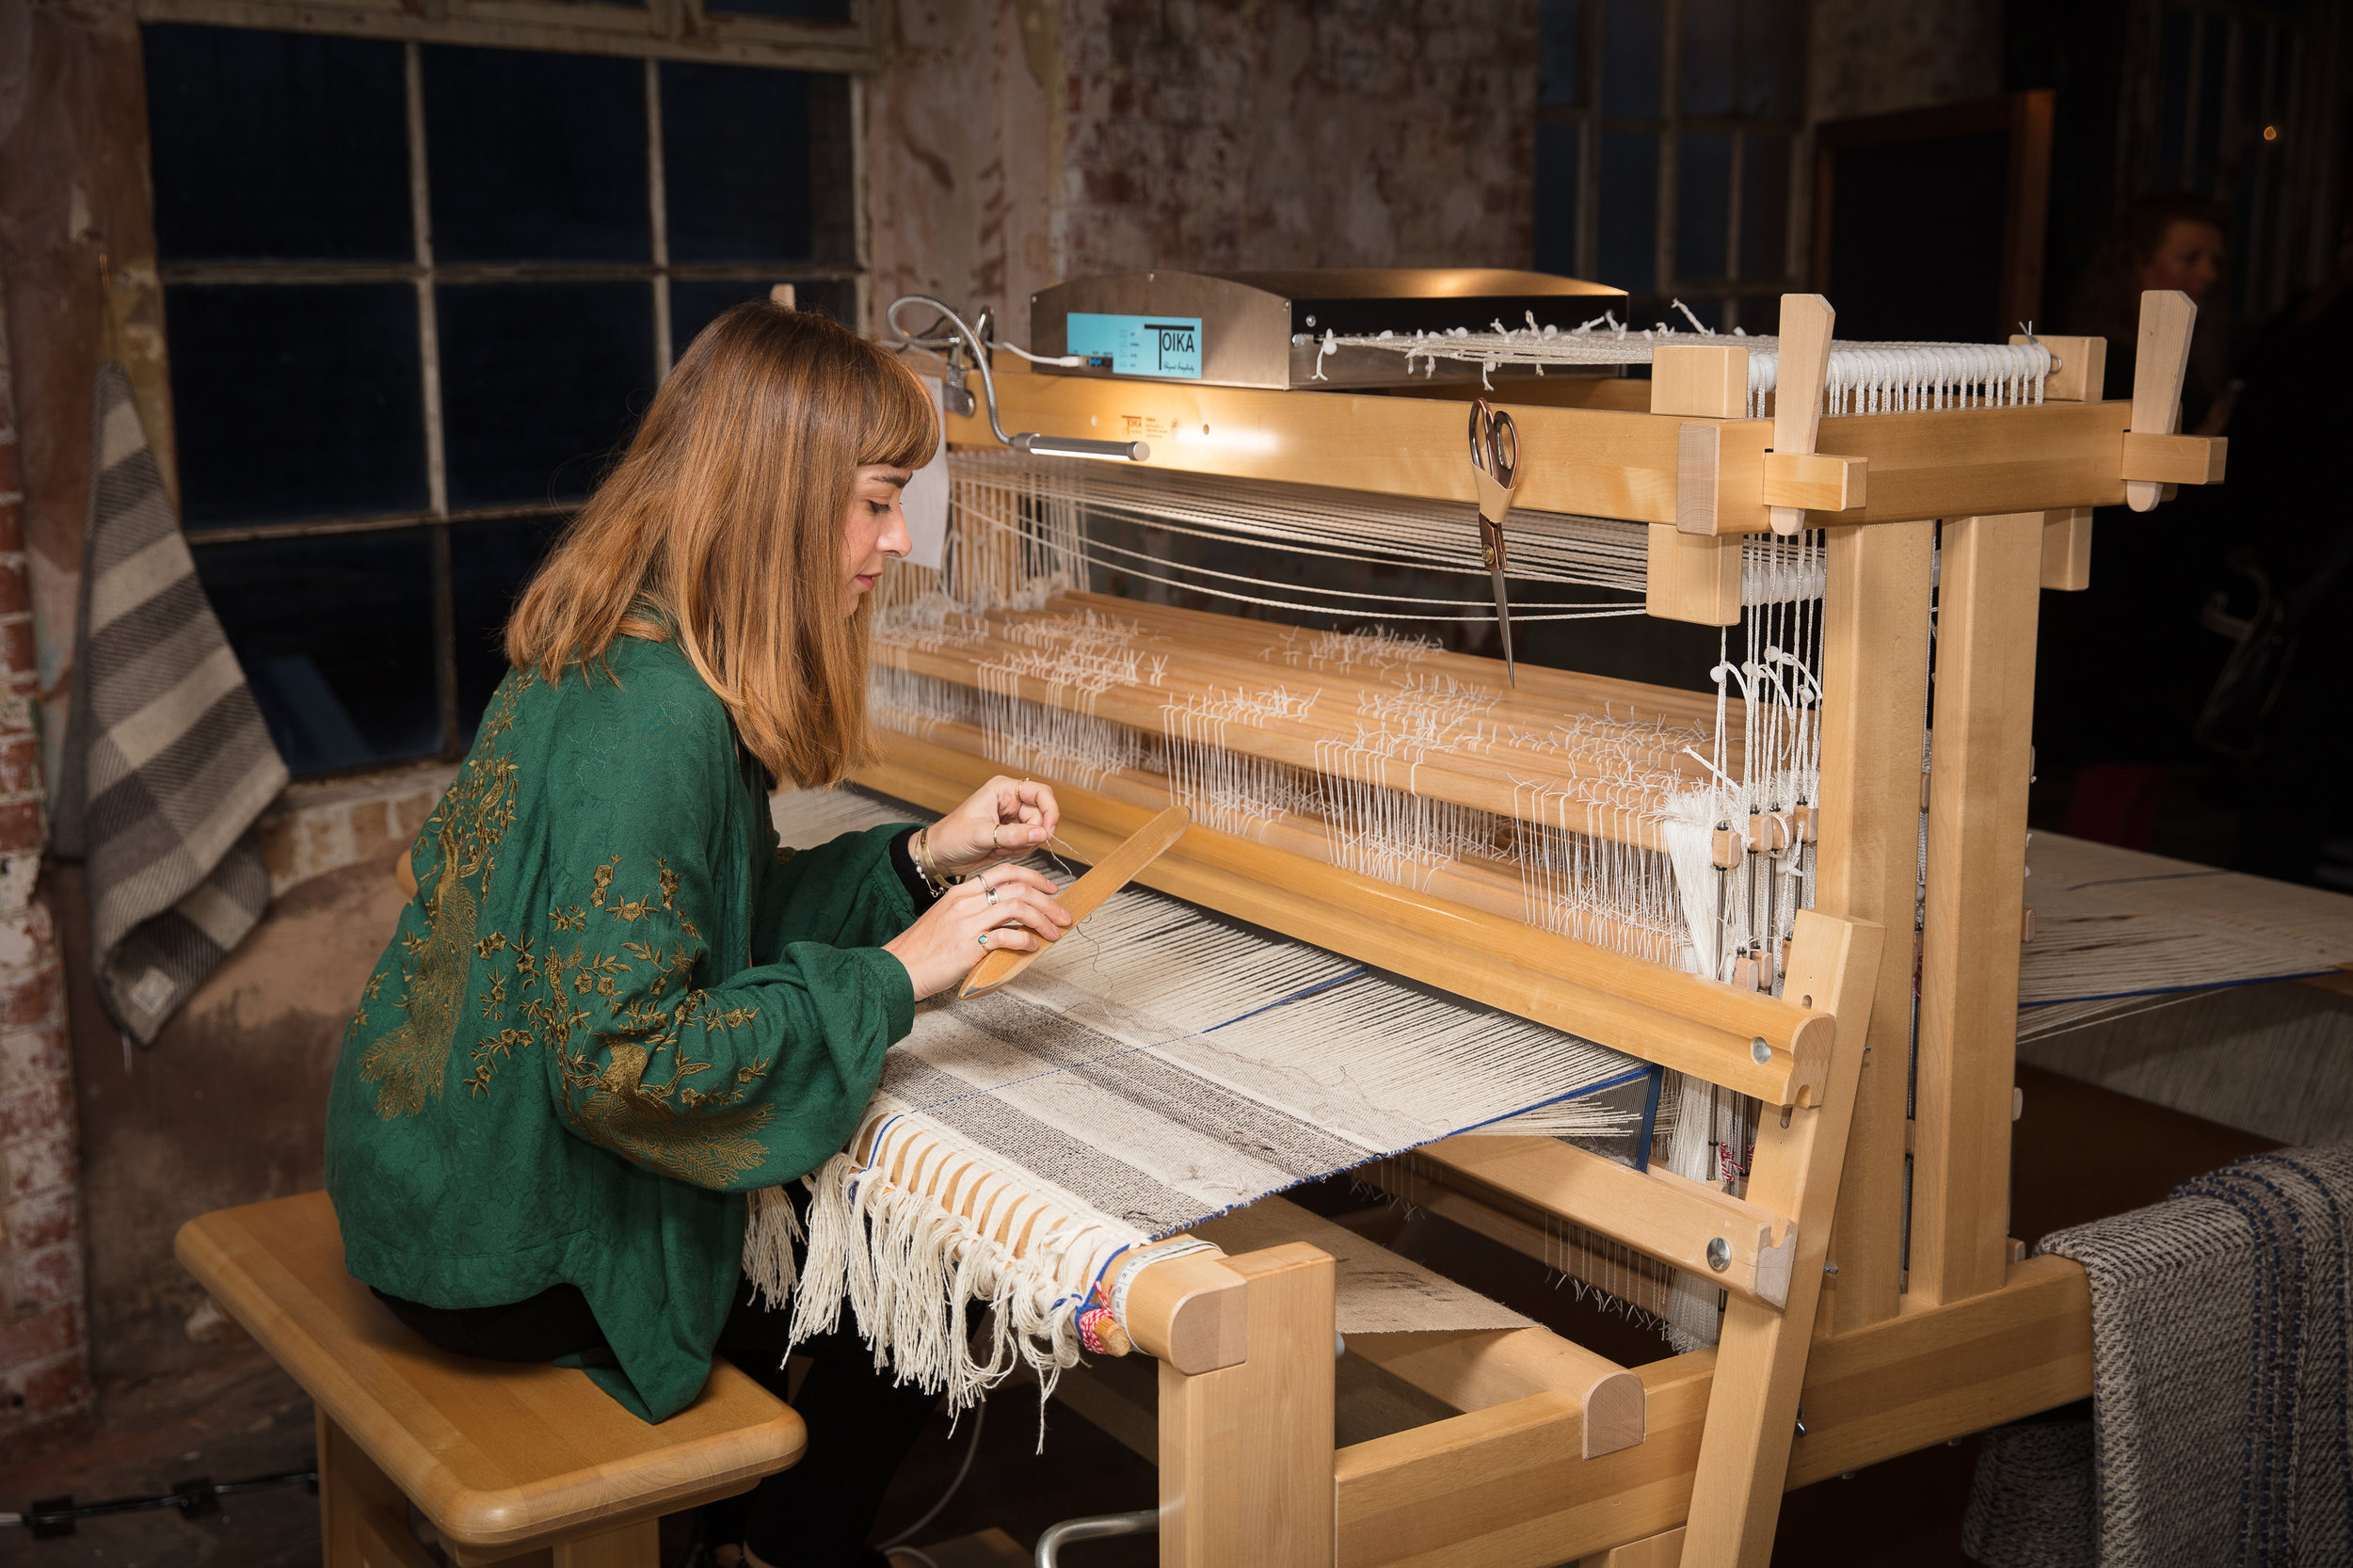 Maria Sigma hand-weaving at The Future of Craft, Oxo Tower Wharf CREDIT: DAN WEILL